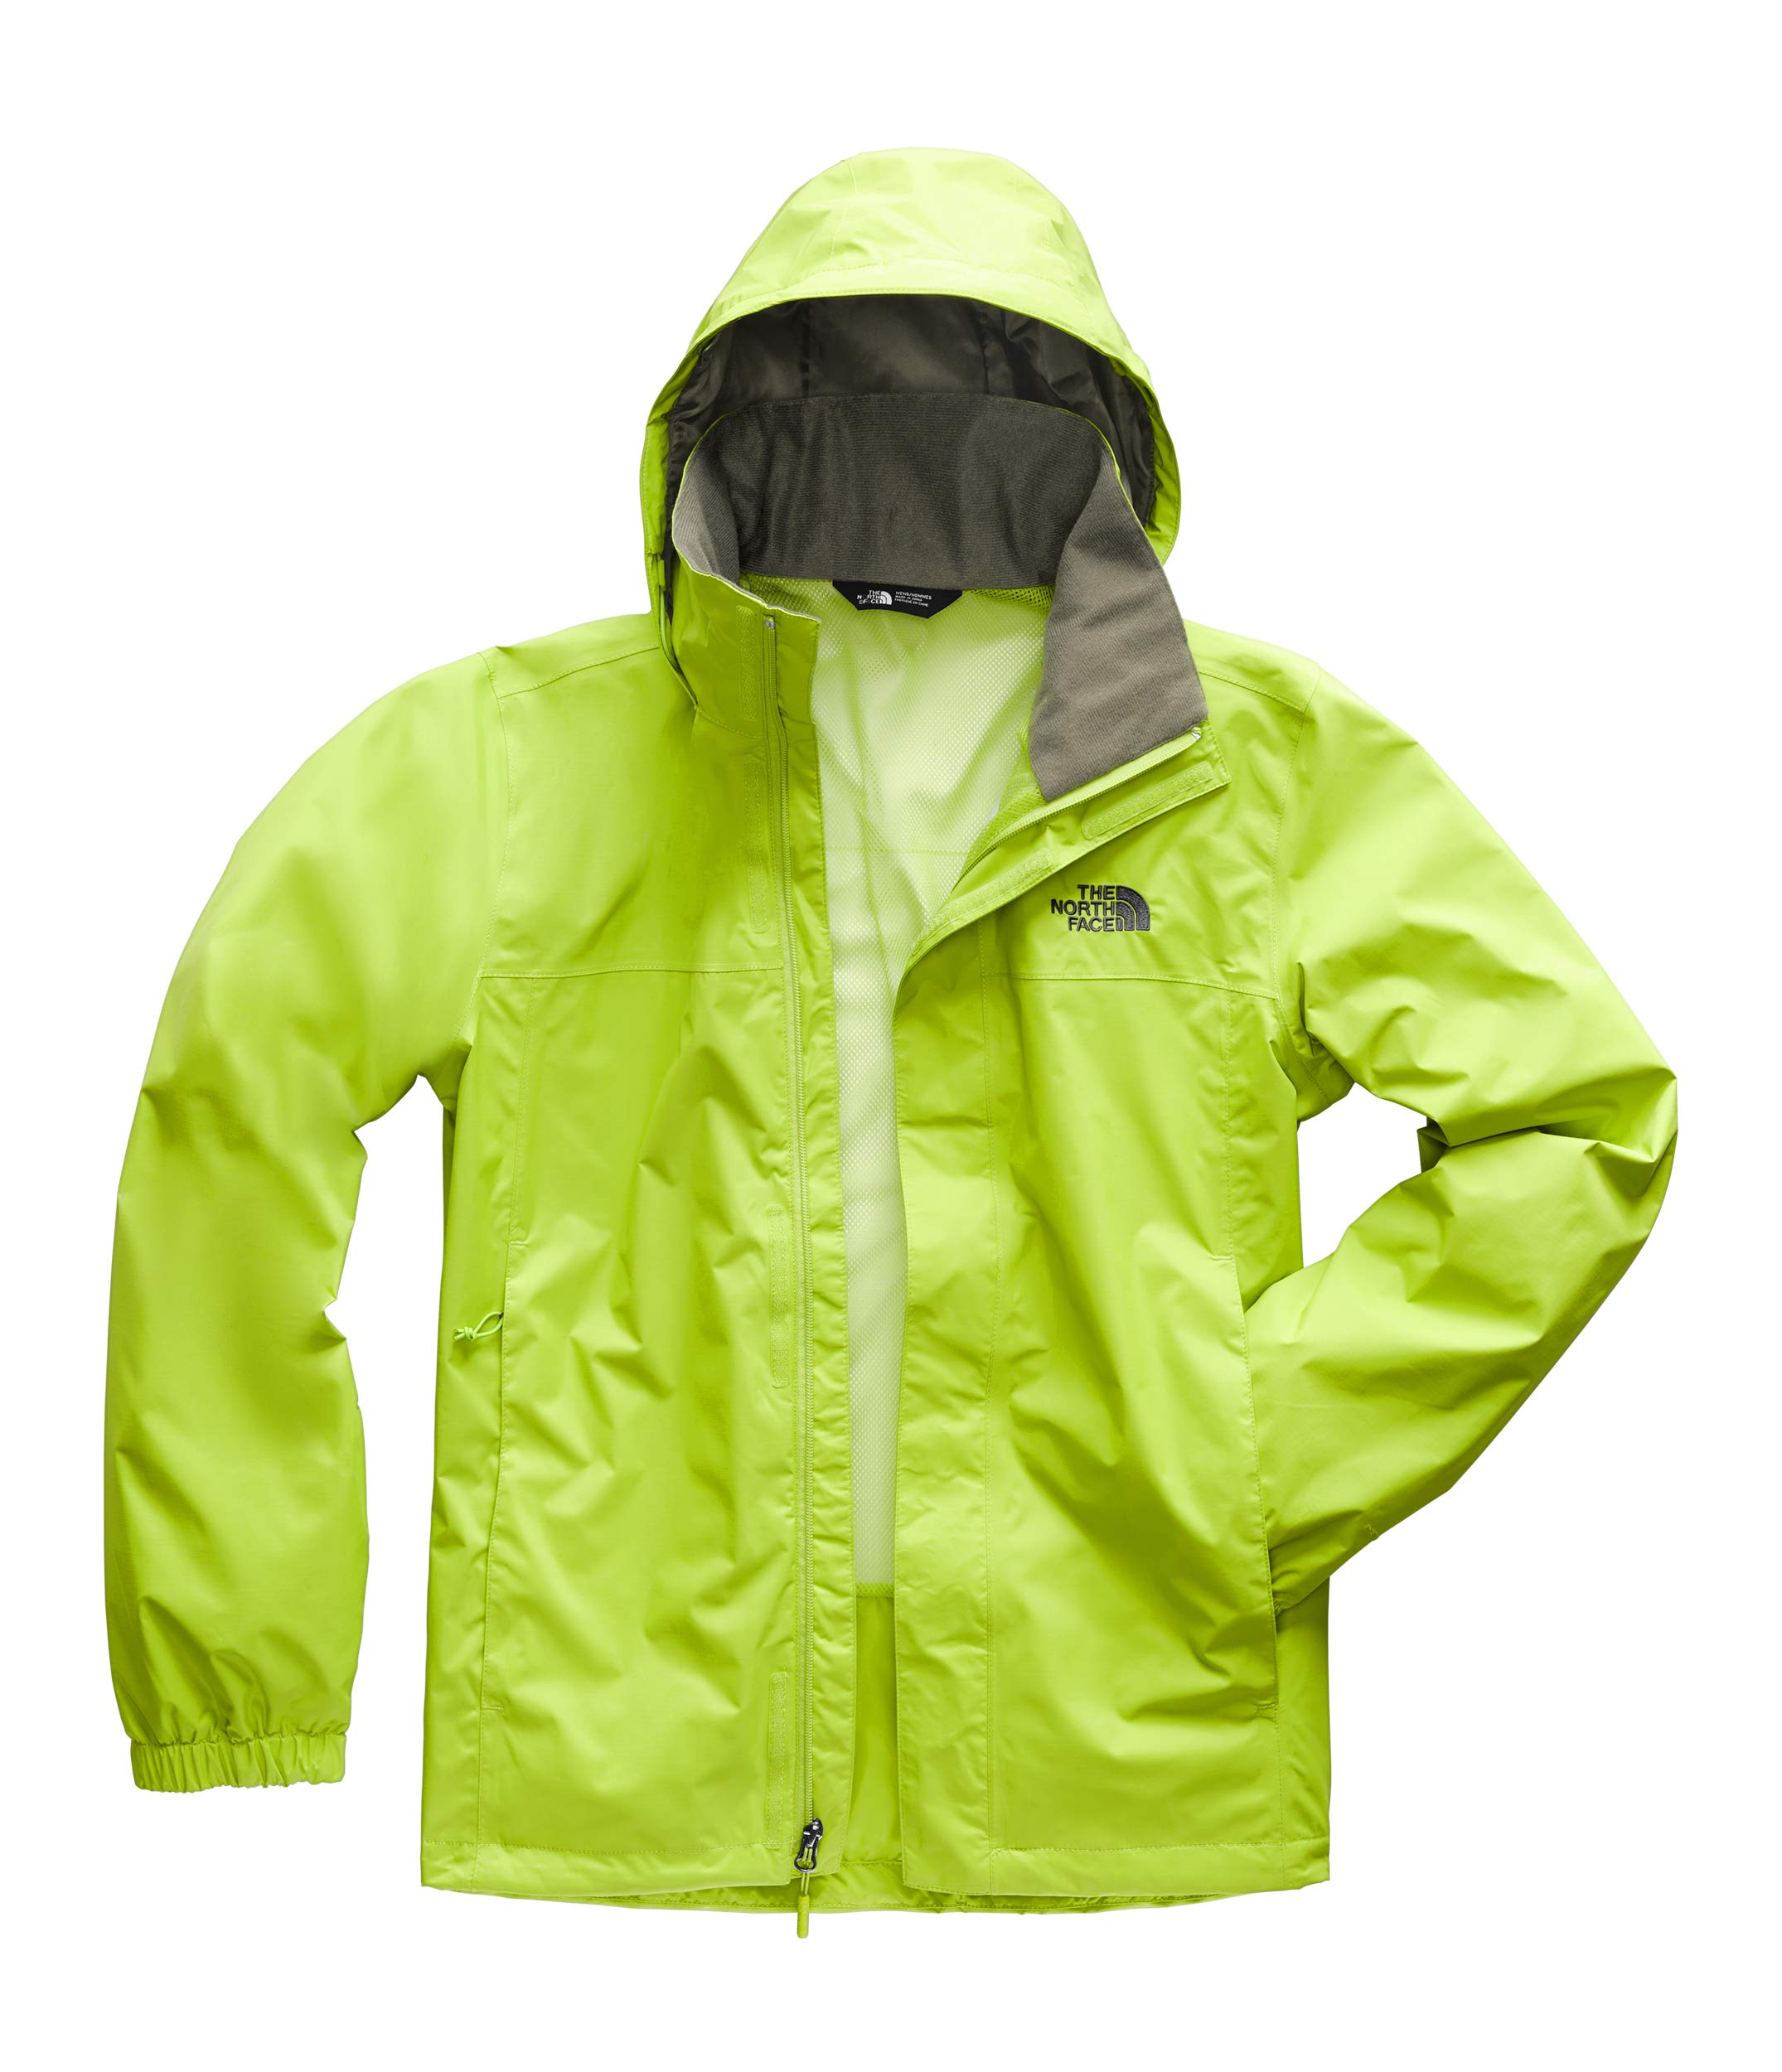 The North Face Men's Resolve 2 Jacket Lime Green/New Taupe Green Small